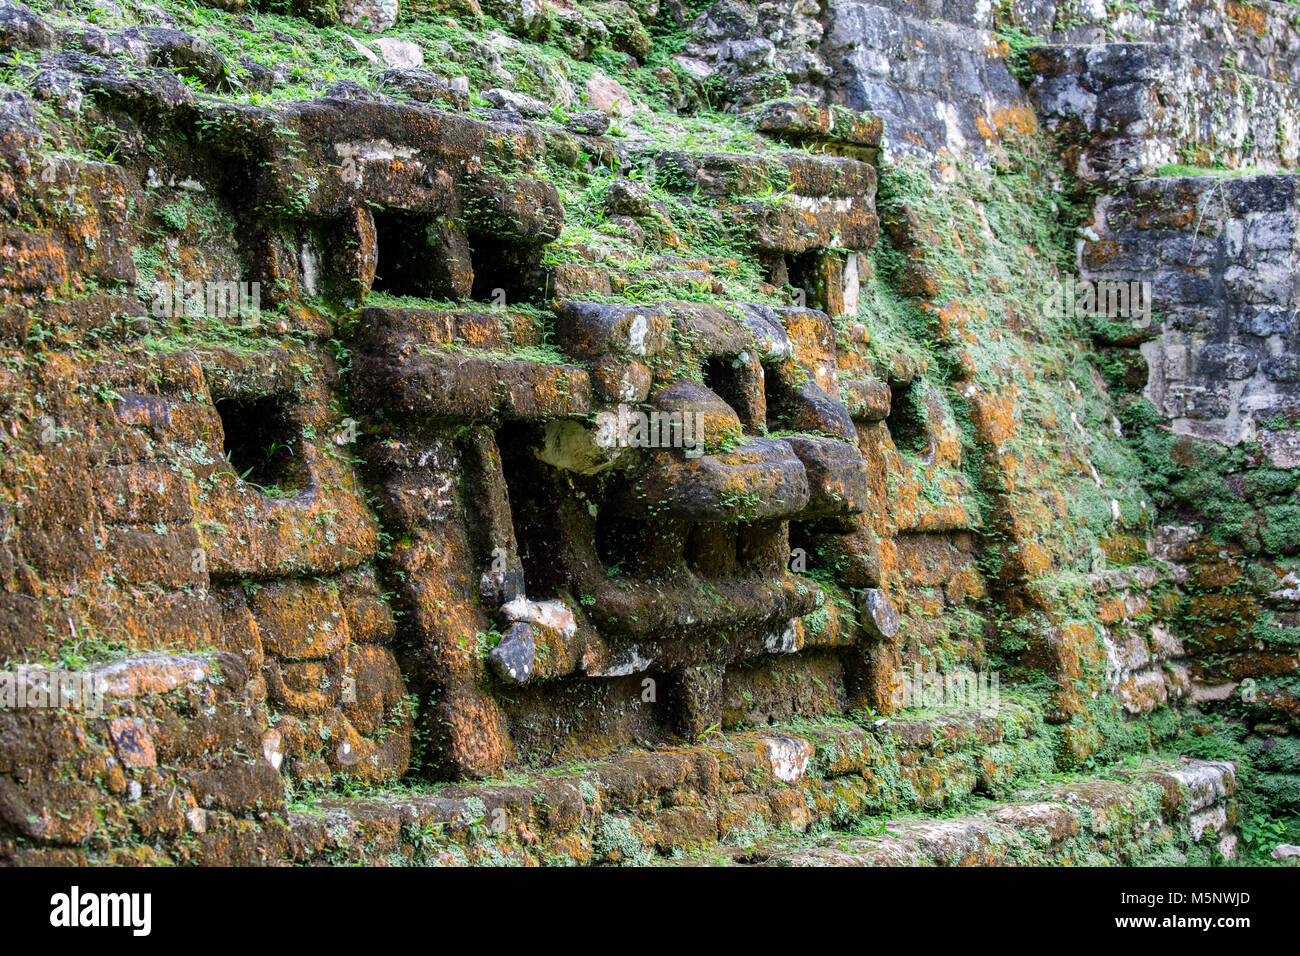 The Belize Lamanai Mayan Ruins - Stock Image